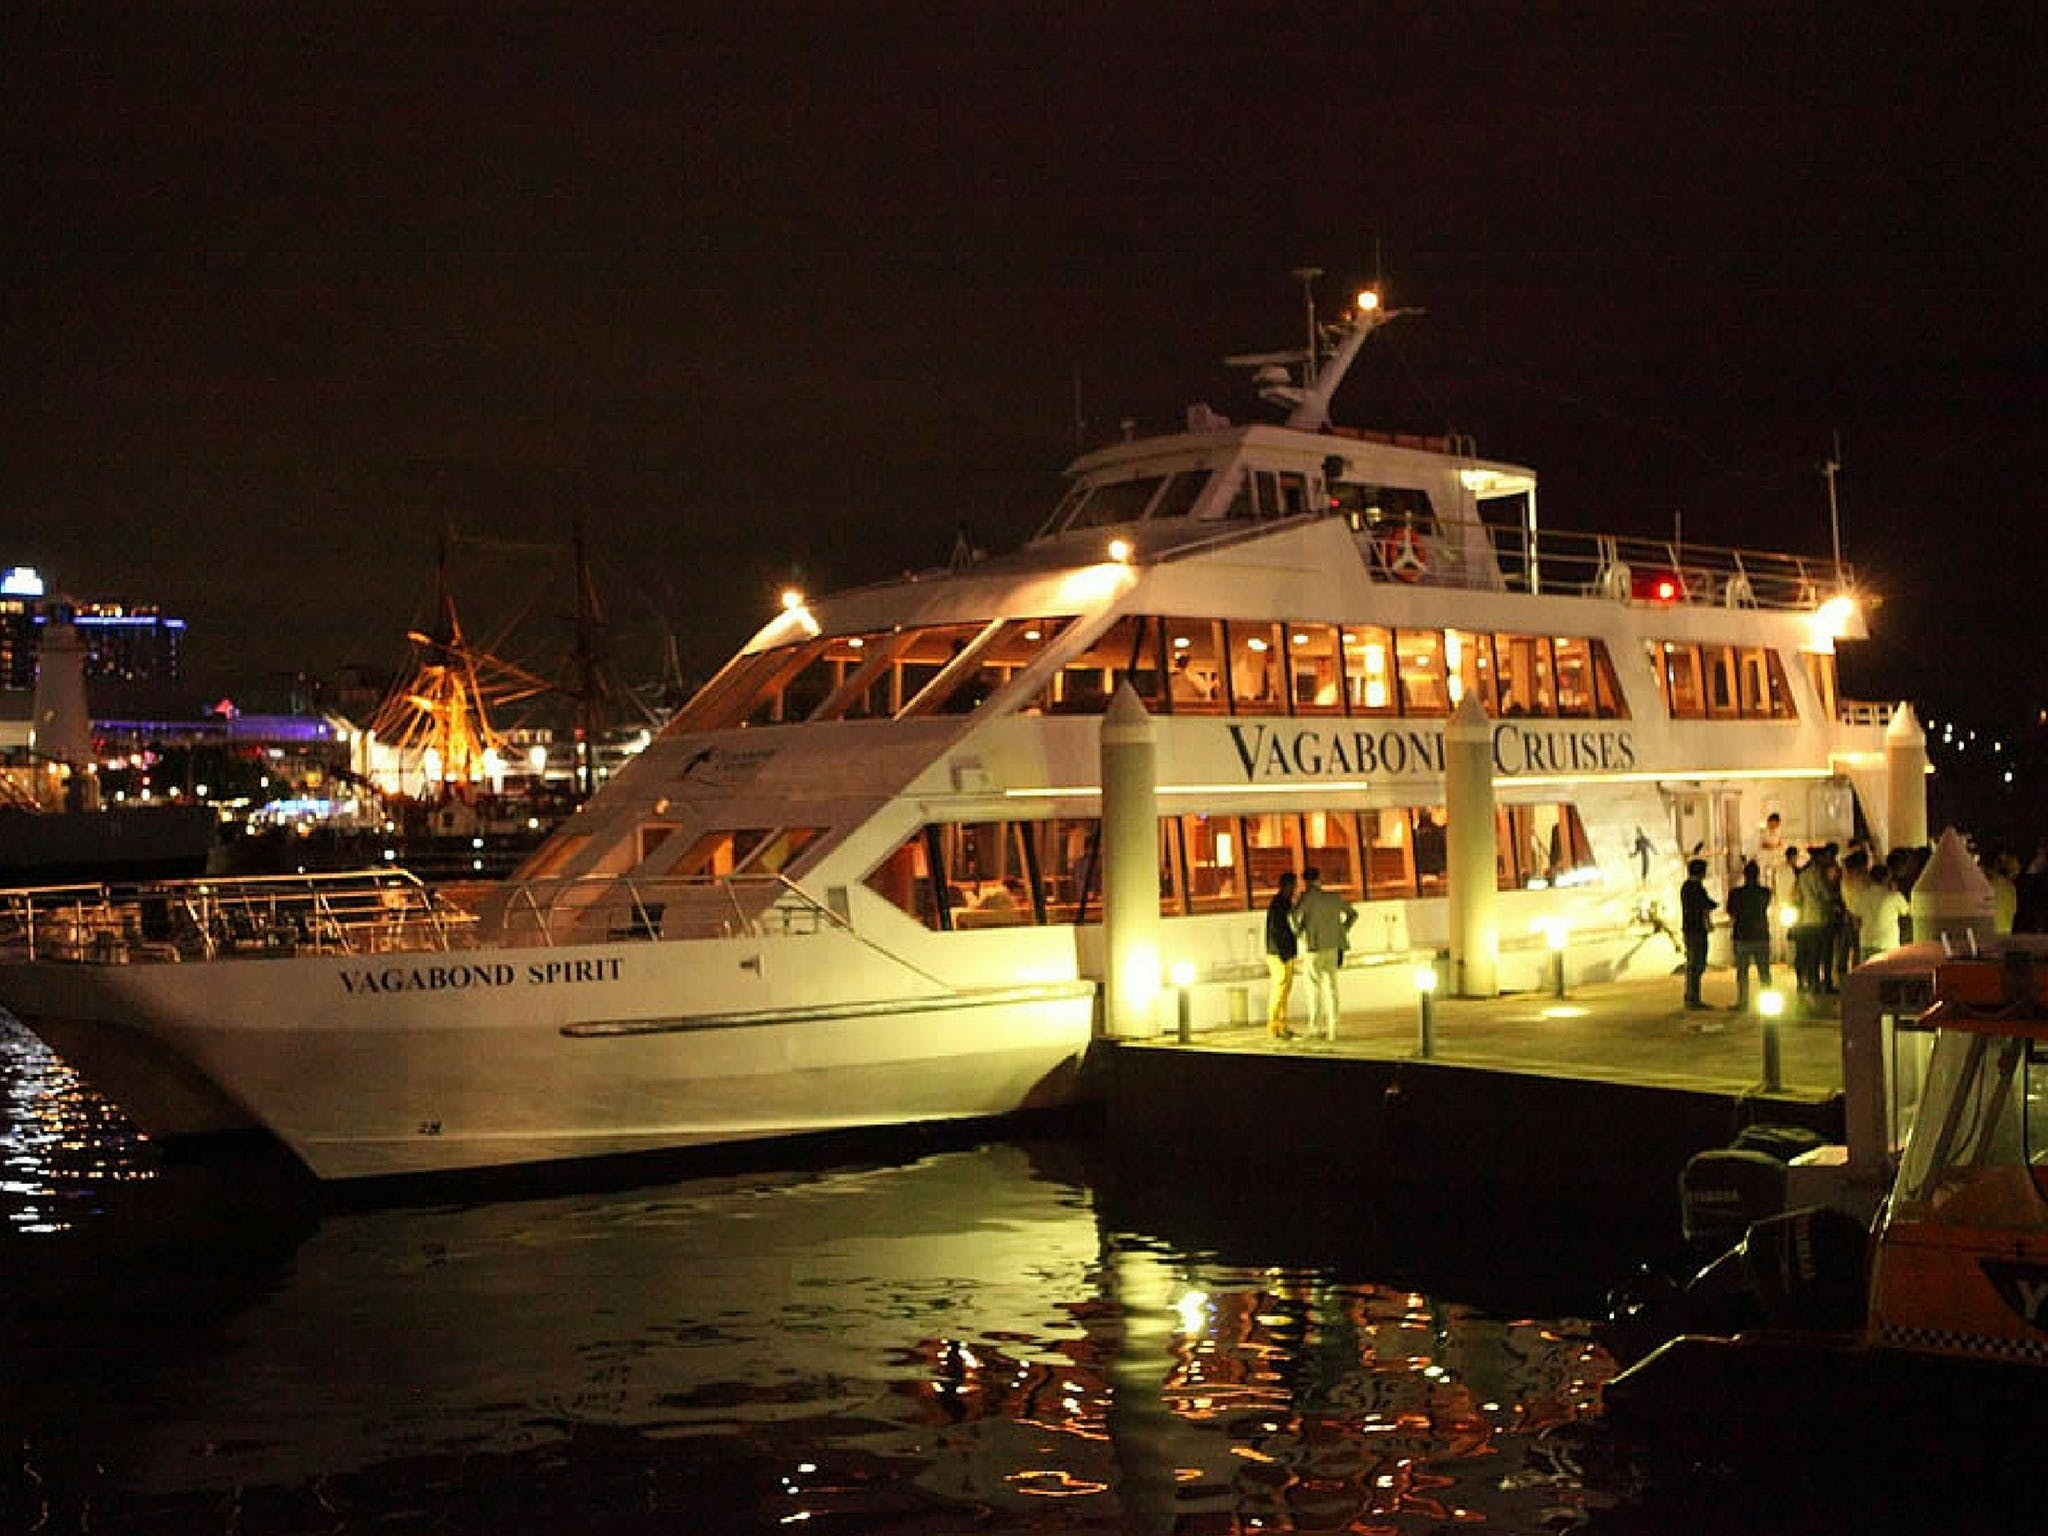 Halloween Party Cruise - Tourism Guide